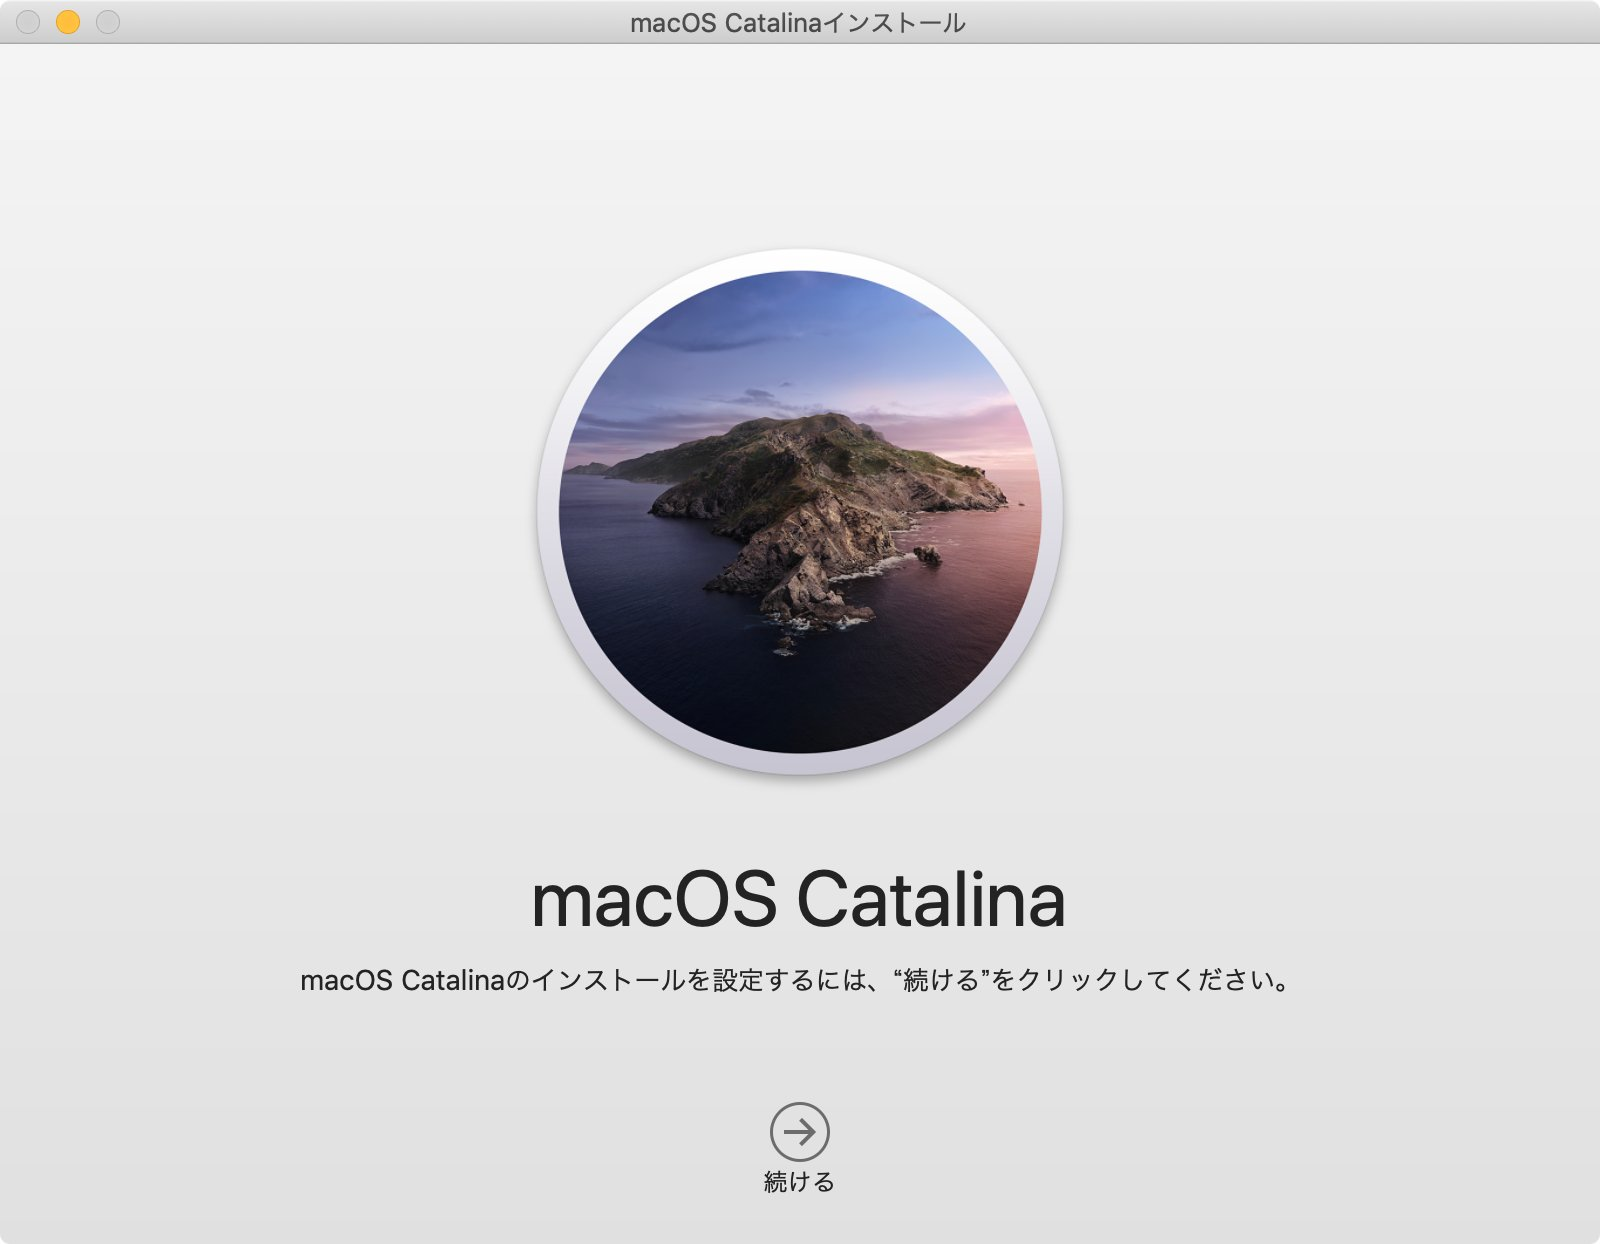 MacBook Air 2018 を macOS Catalina にアップグレード完了。 https://t.co/7GdlAOFCWw